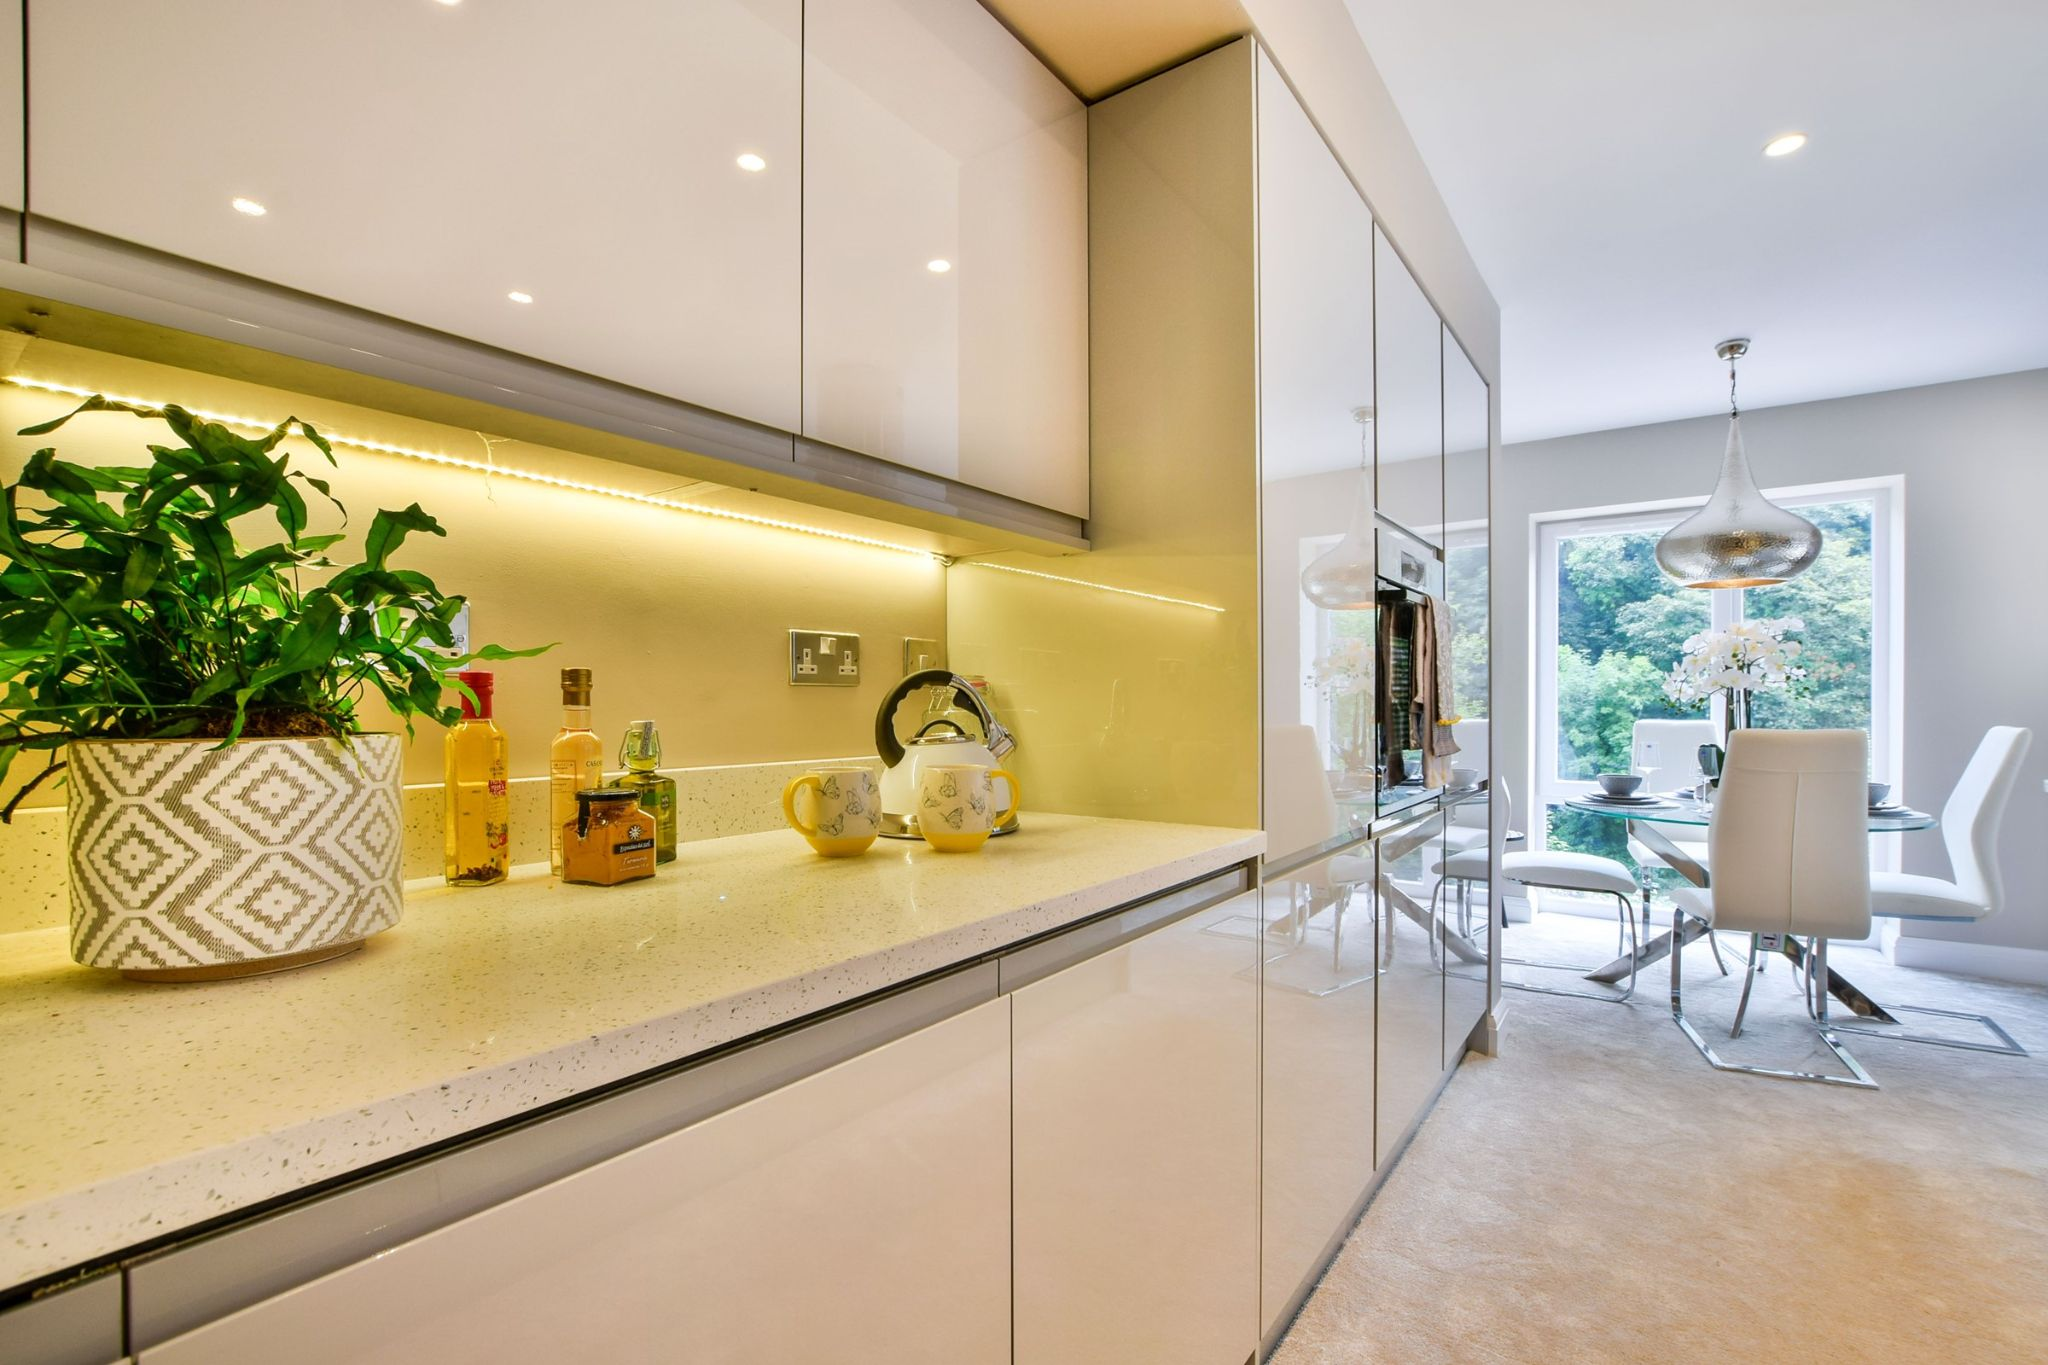 2 Bedroom Apartment Flat/apartment For Sale - Kitchen to Dining Area